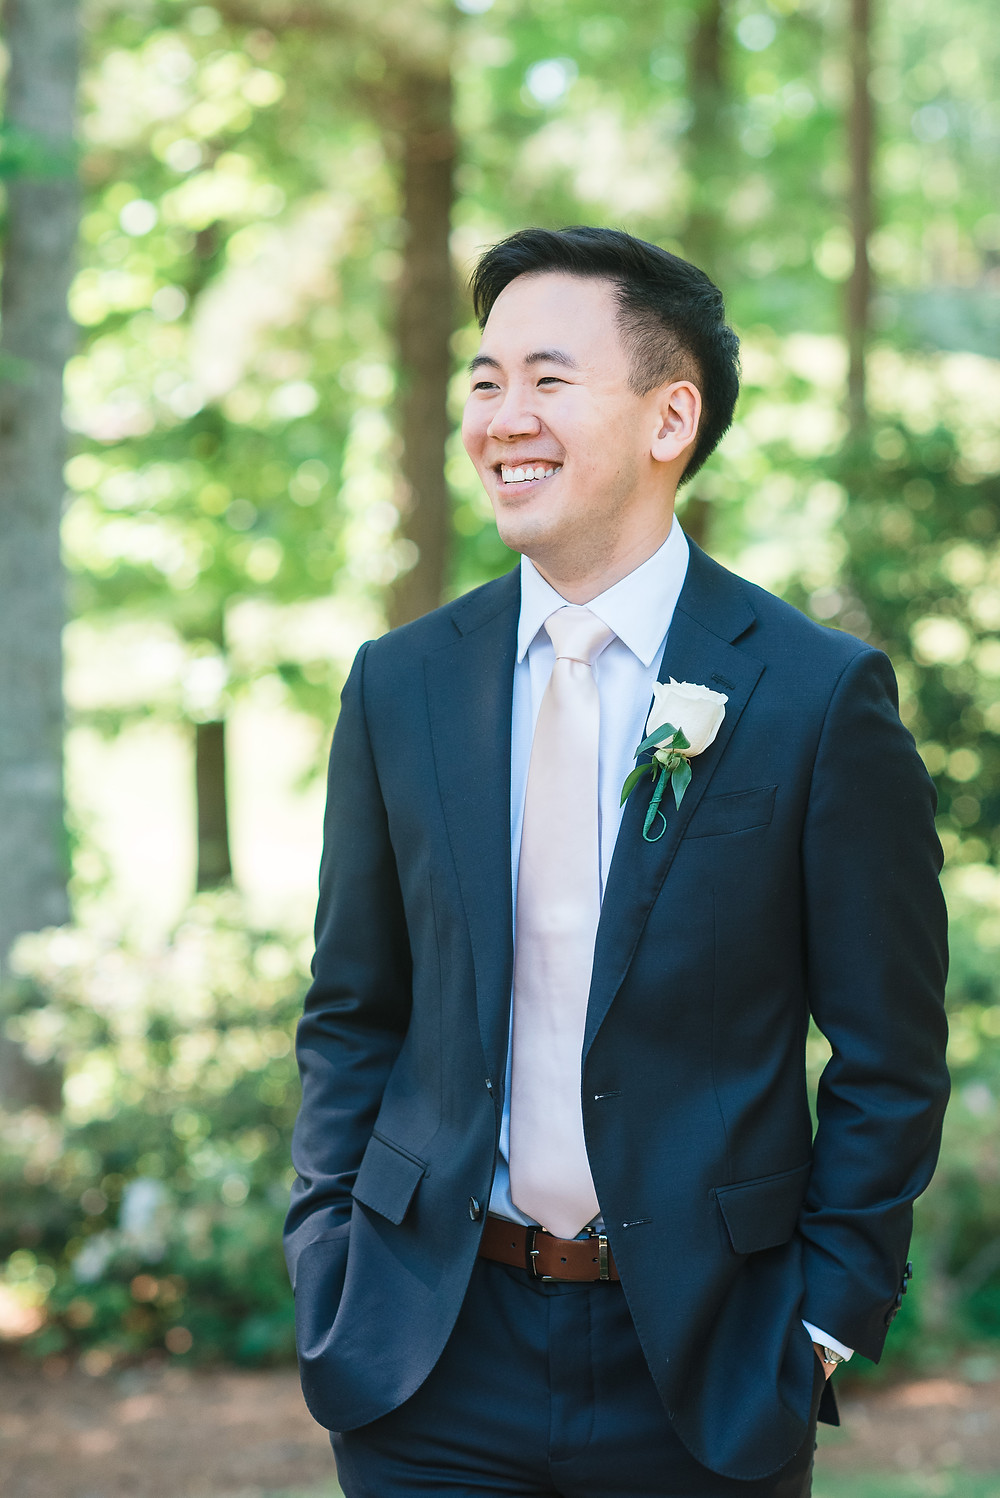 groom in navy stylish tux getting married the country club of the south